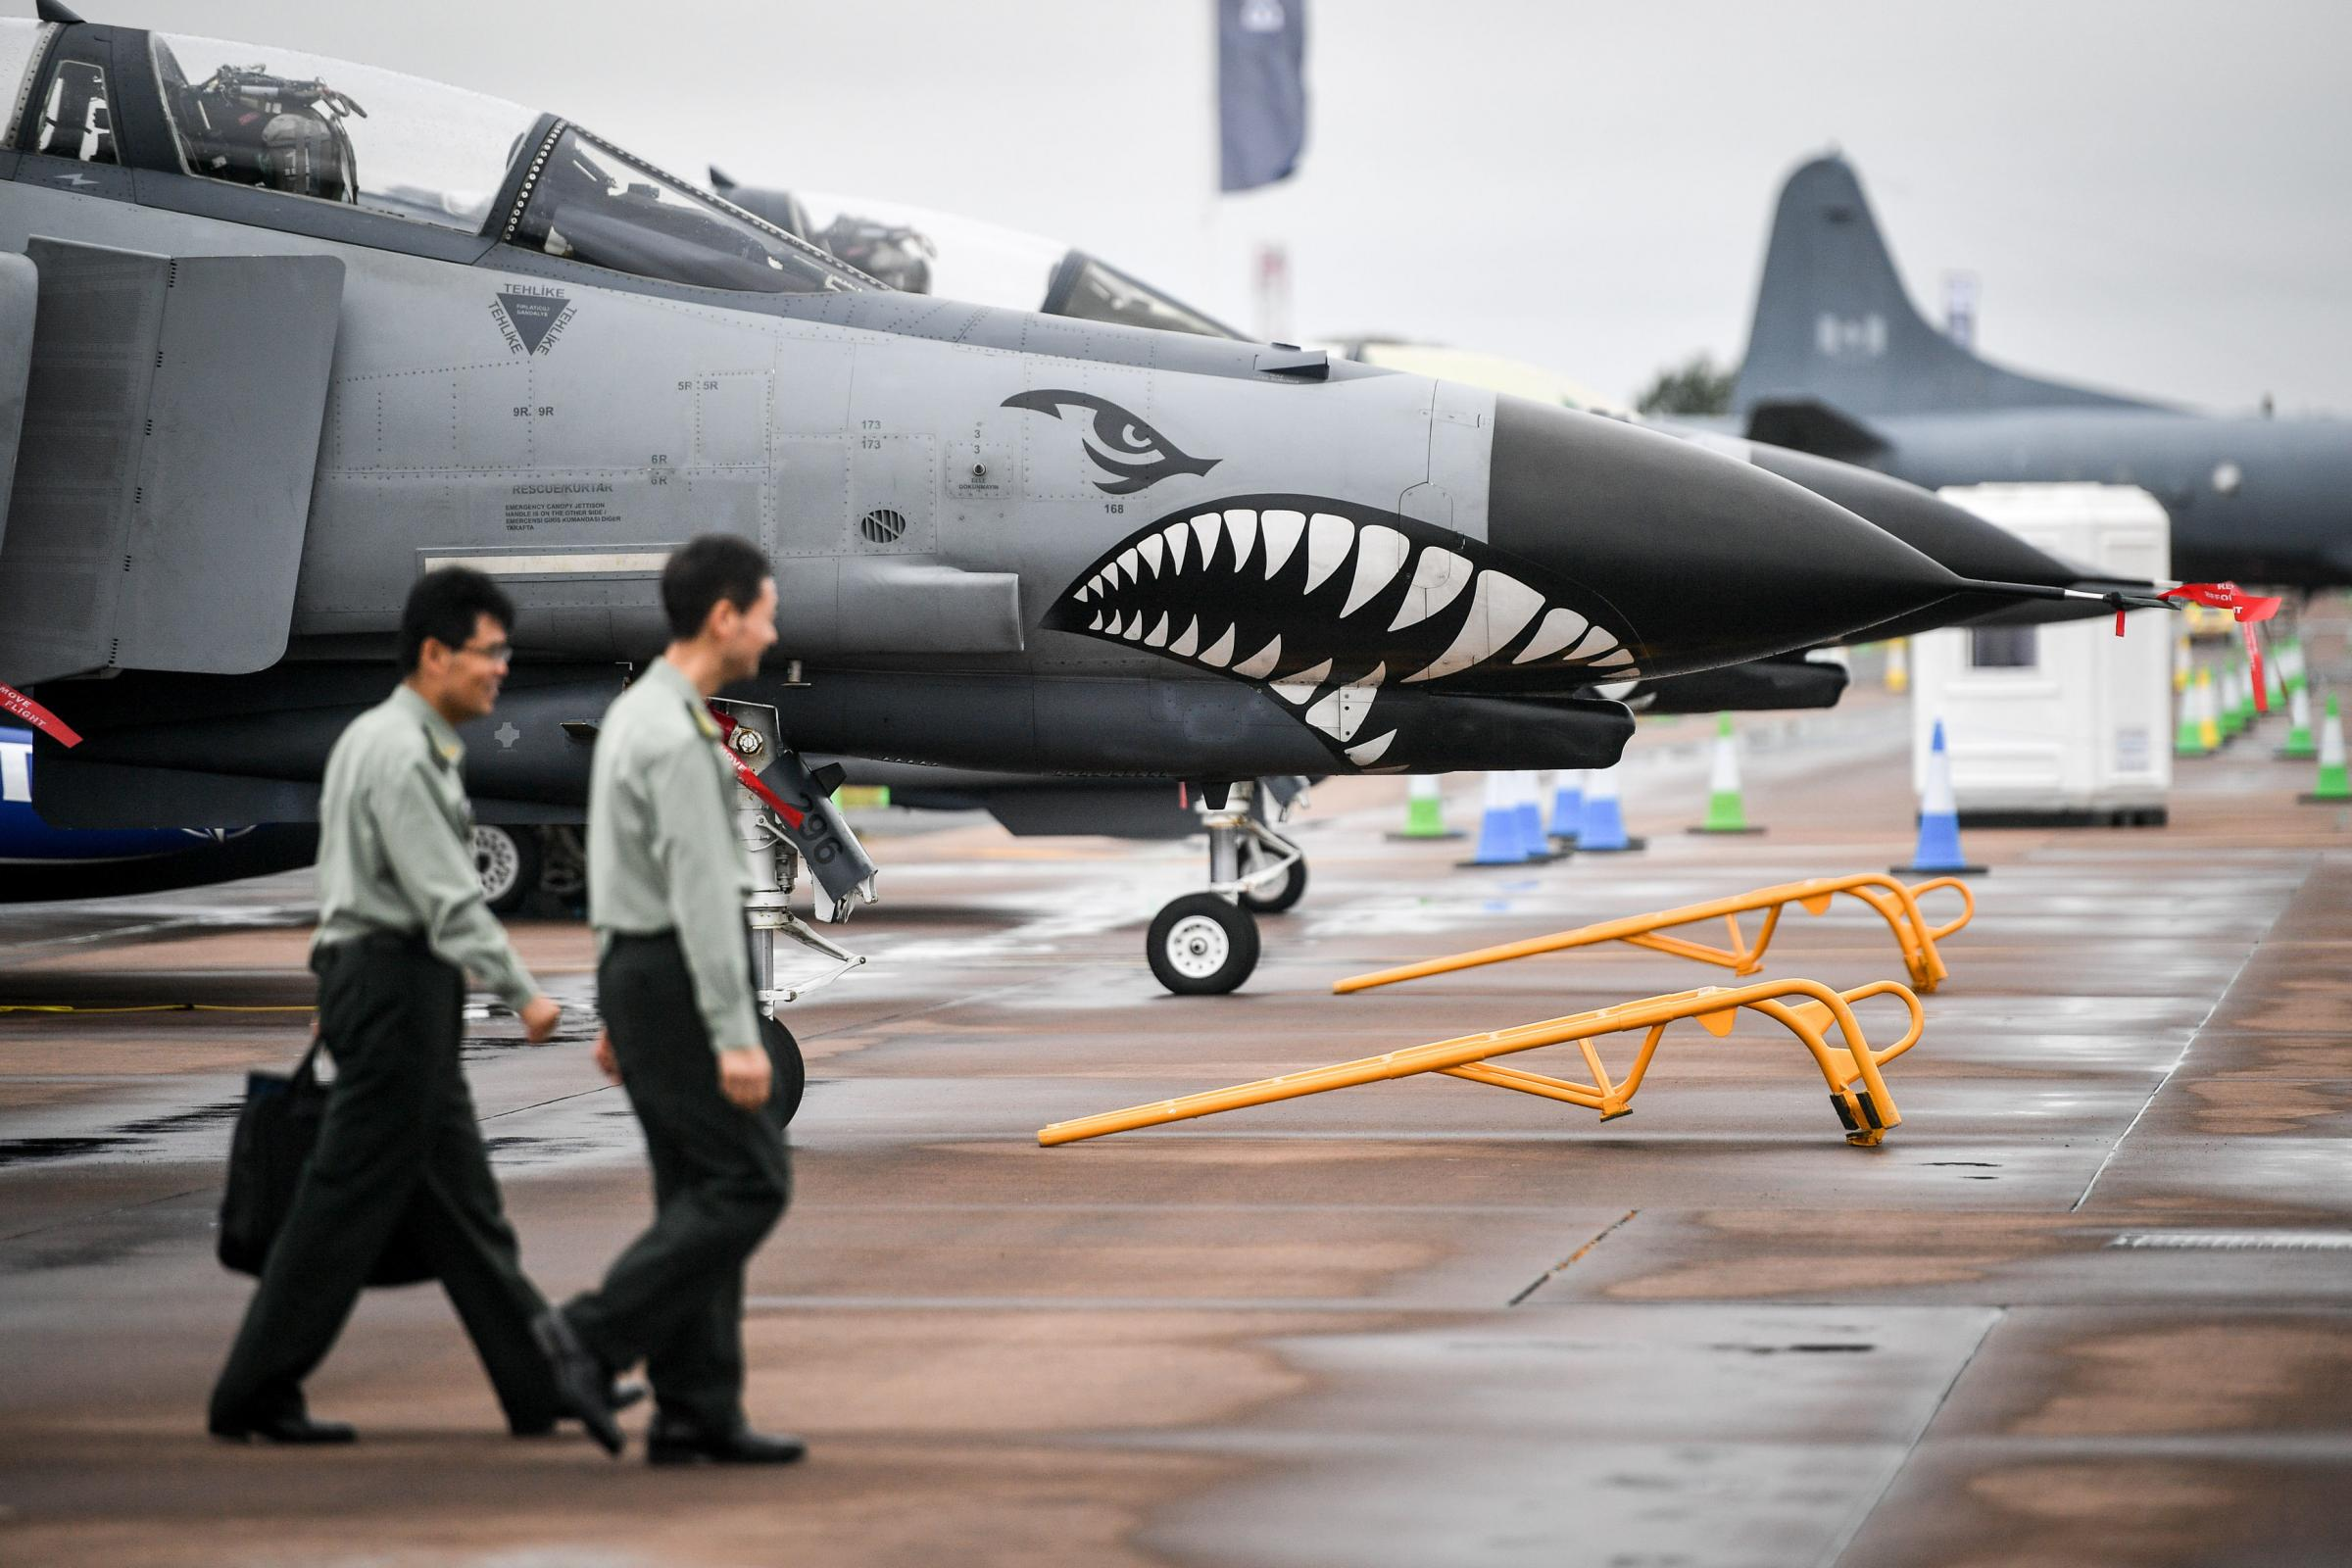 RIAT 2019: Everything you need to know about day 3 (including when the Red Arrows are flying)